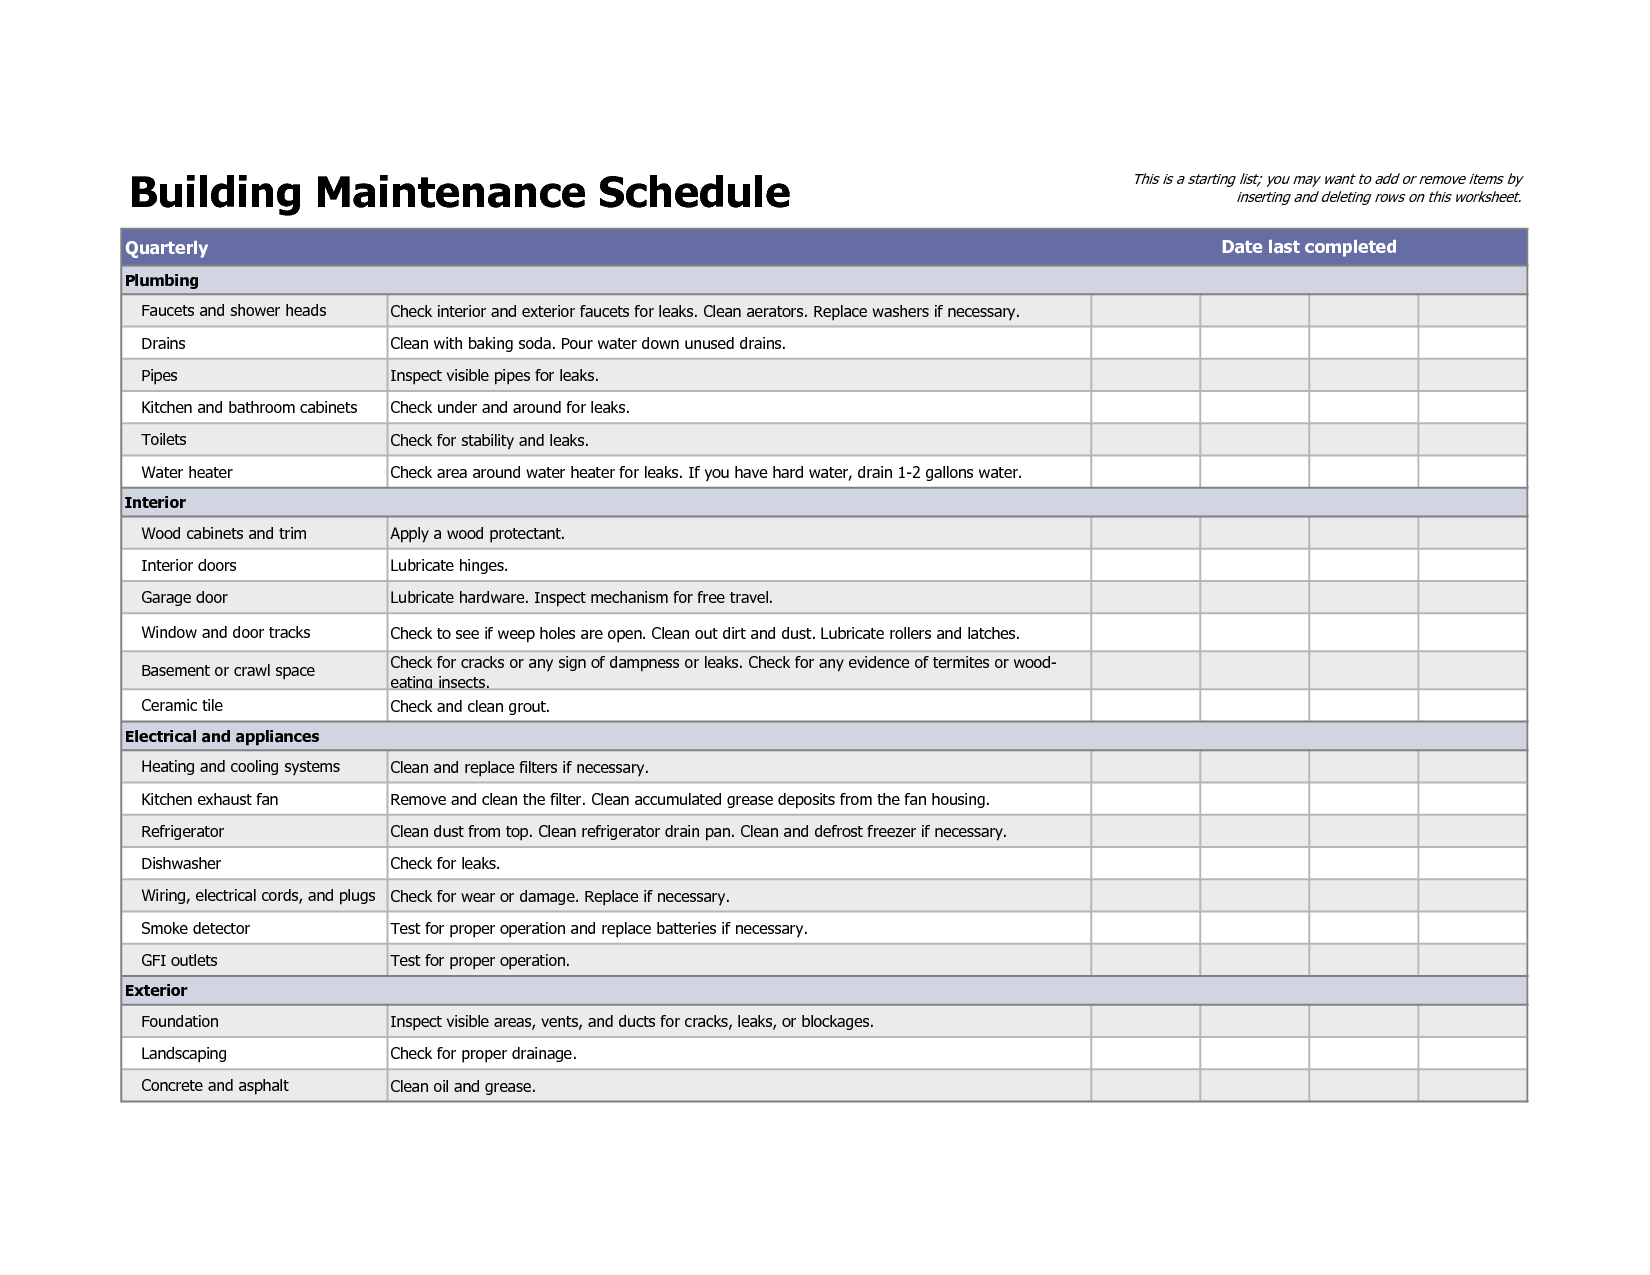 Building Maintenance Schedule Template